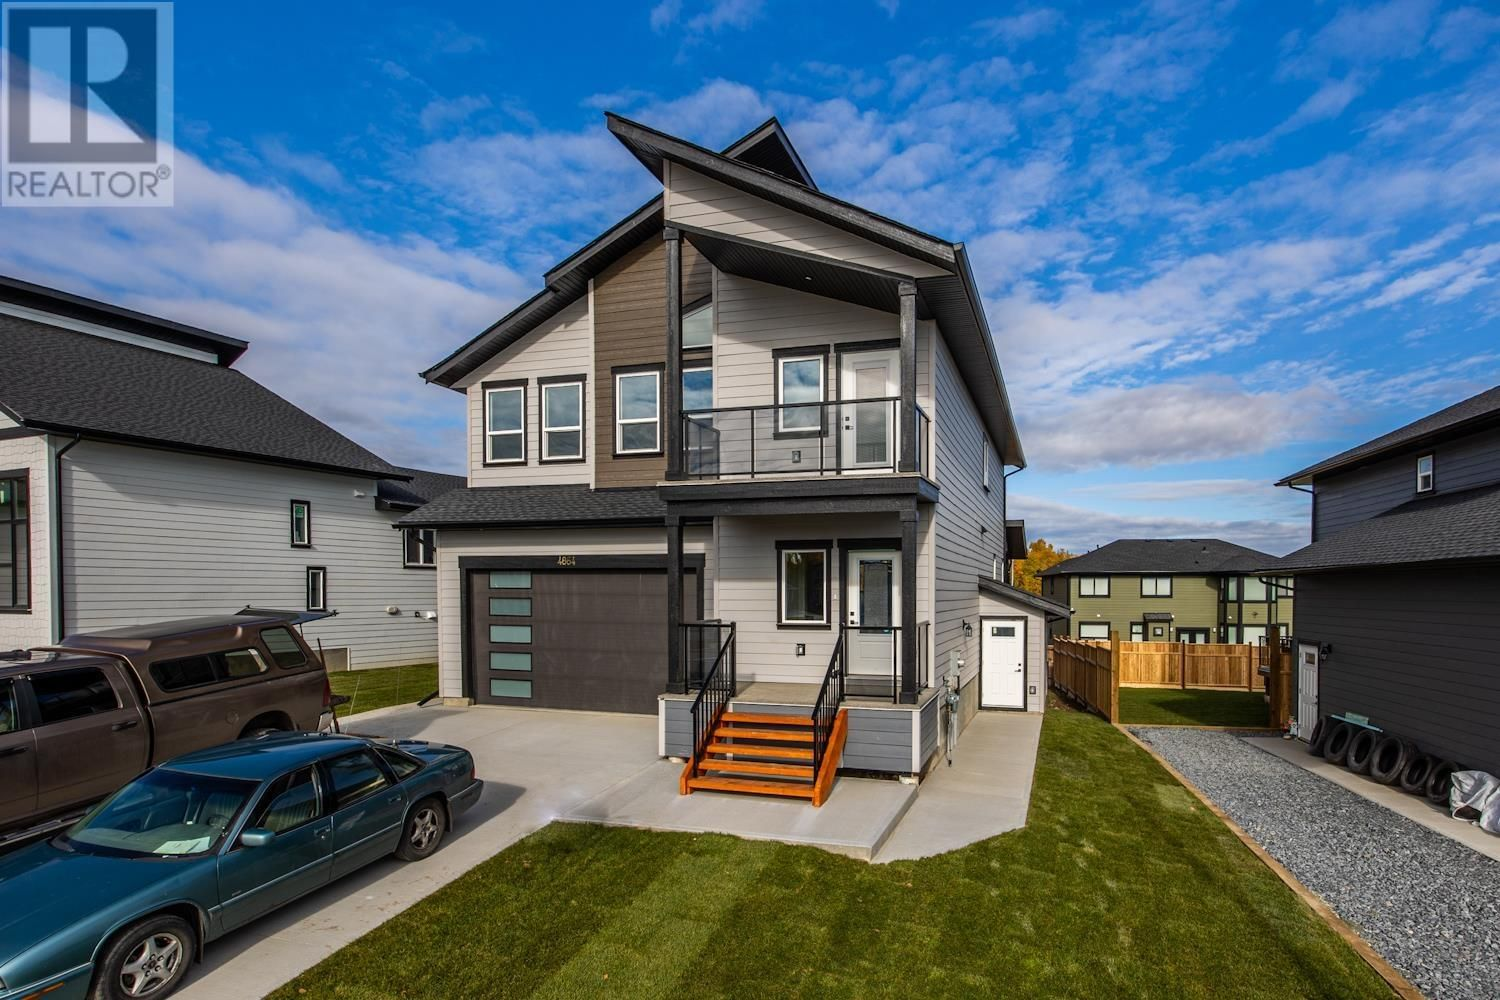 Main Photo: 4864 LOGAN CRESCENT in Prince George: House for sale : MLS®# R2535701